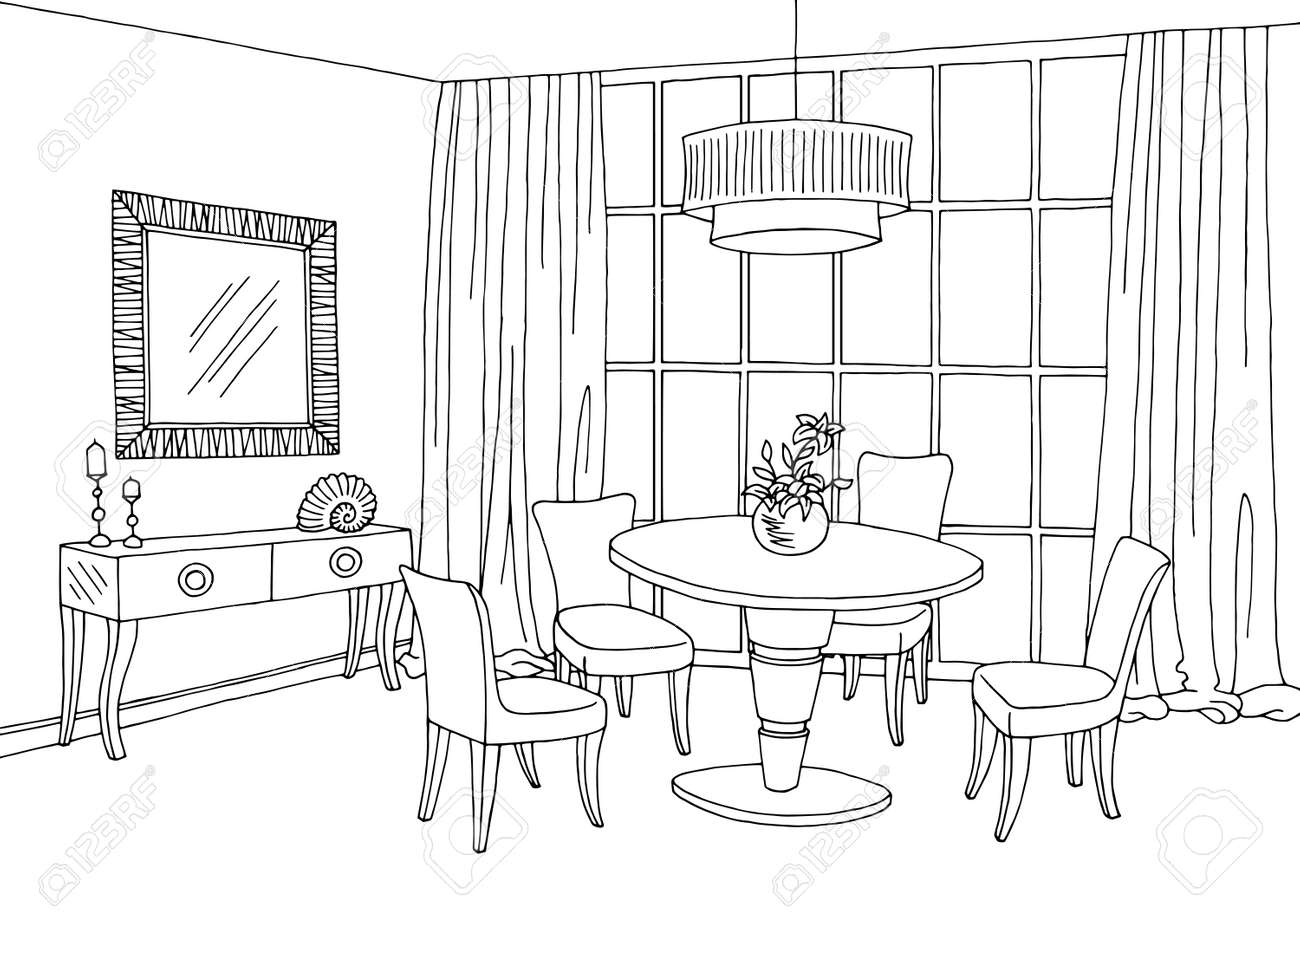 Dining Room Graphic Black White Sketch Illustration Vector Royalty